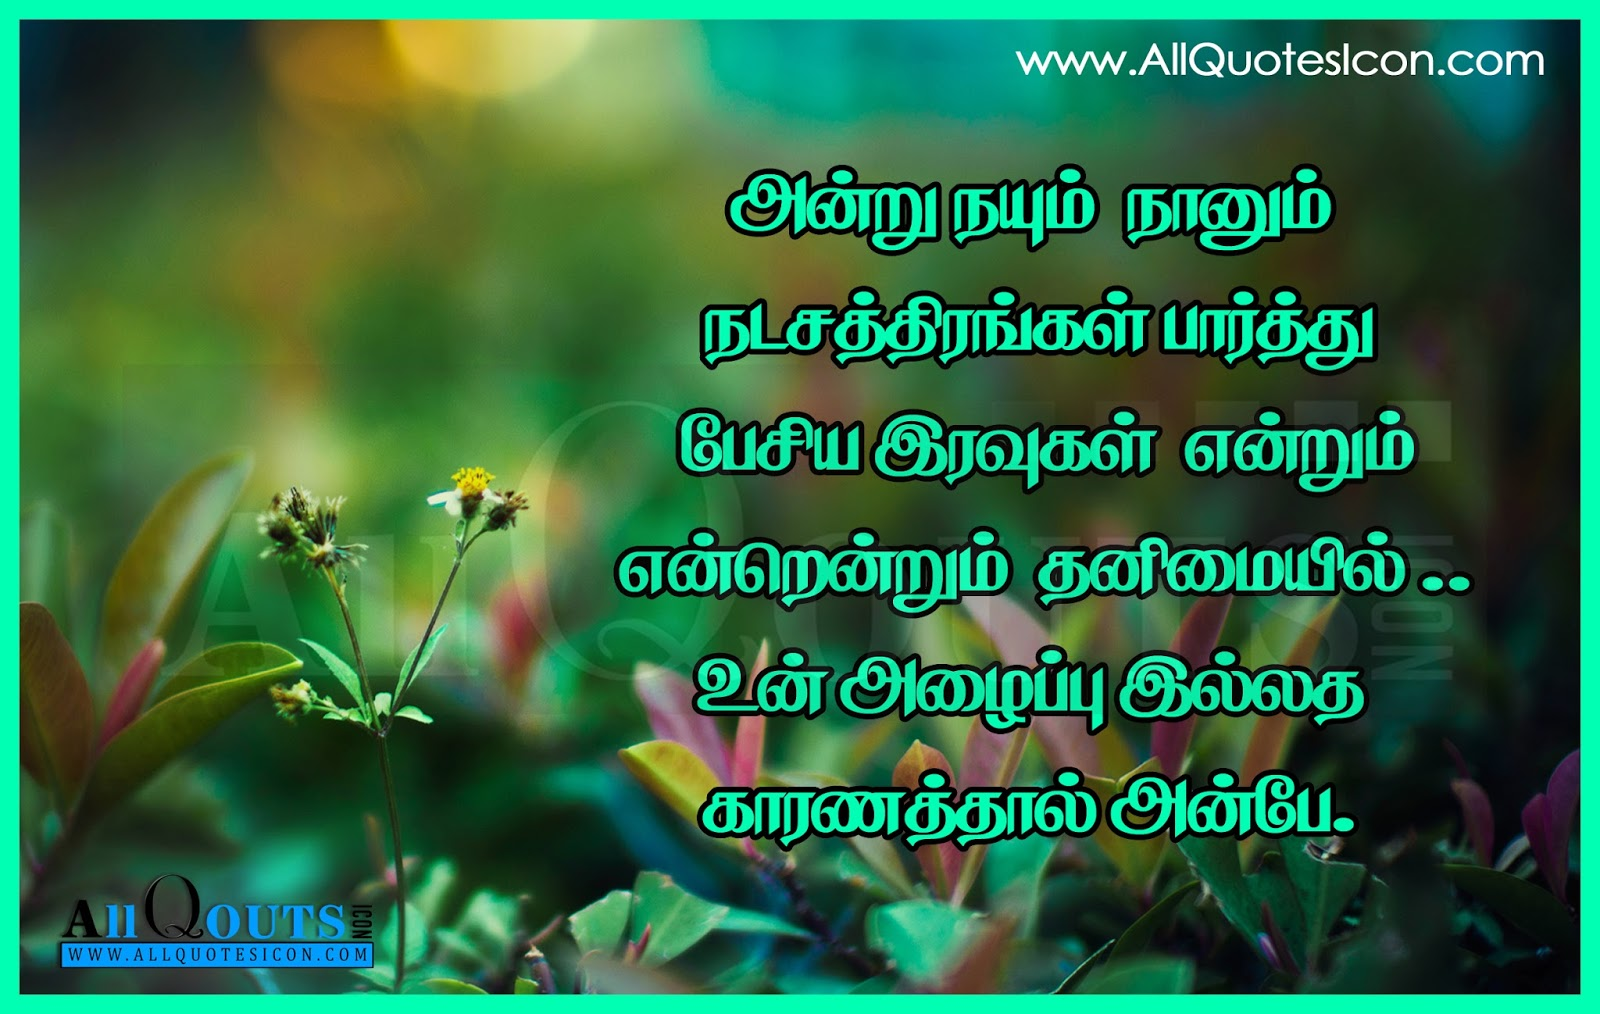 Best Life Quotes Images In Tamil Goodpict1storg